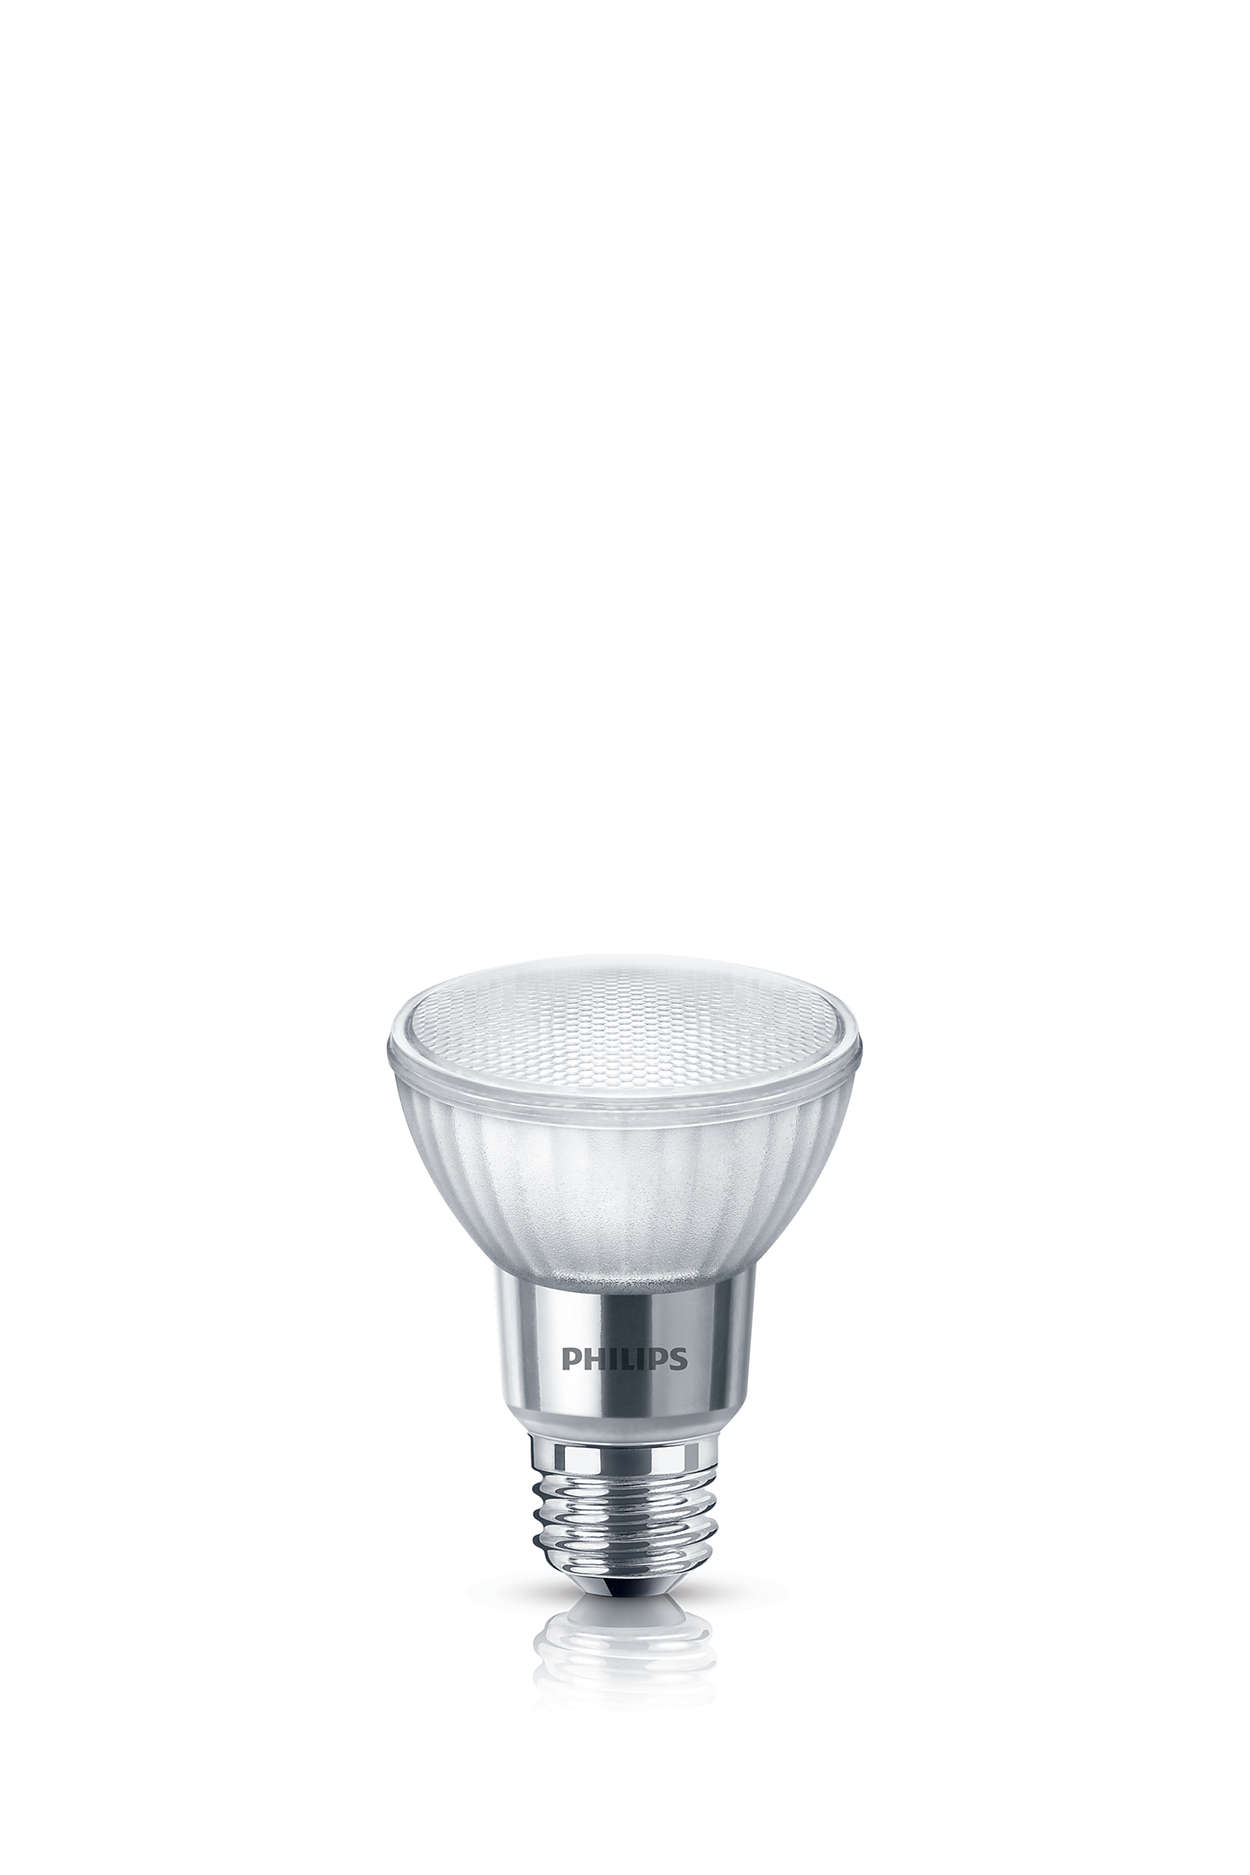 Durable LED accent lighting with a focused beam